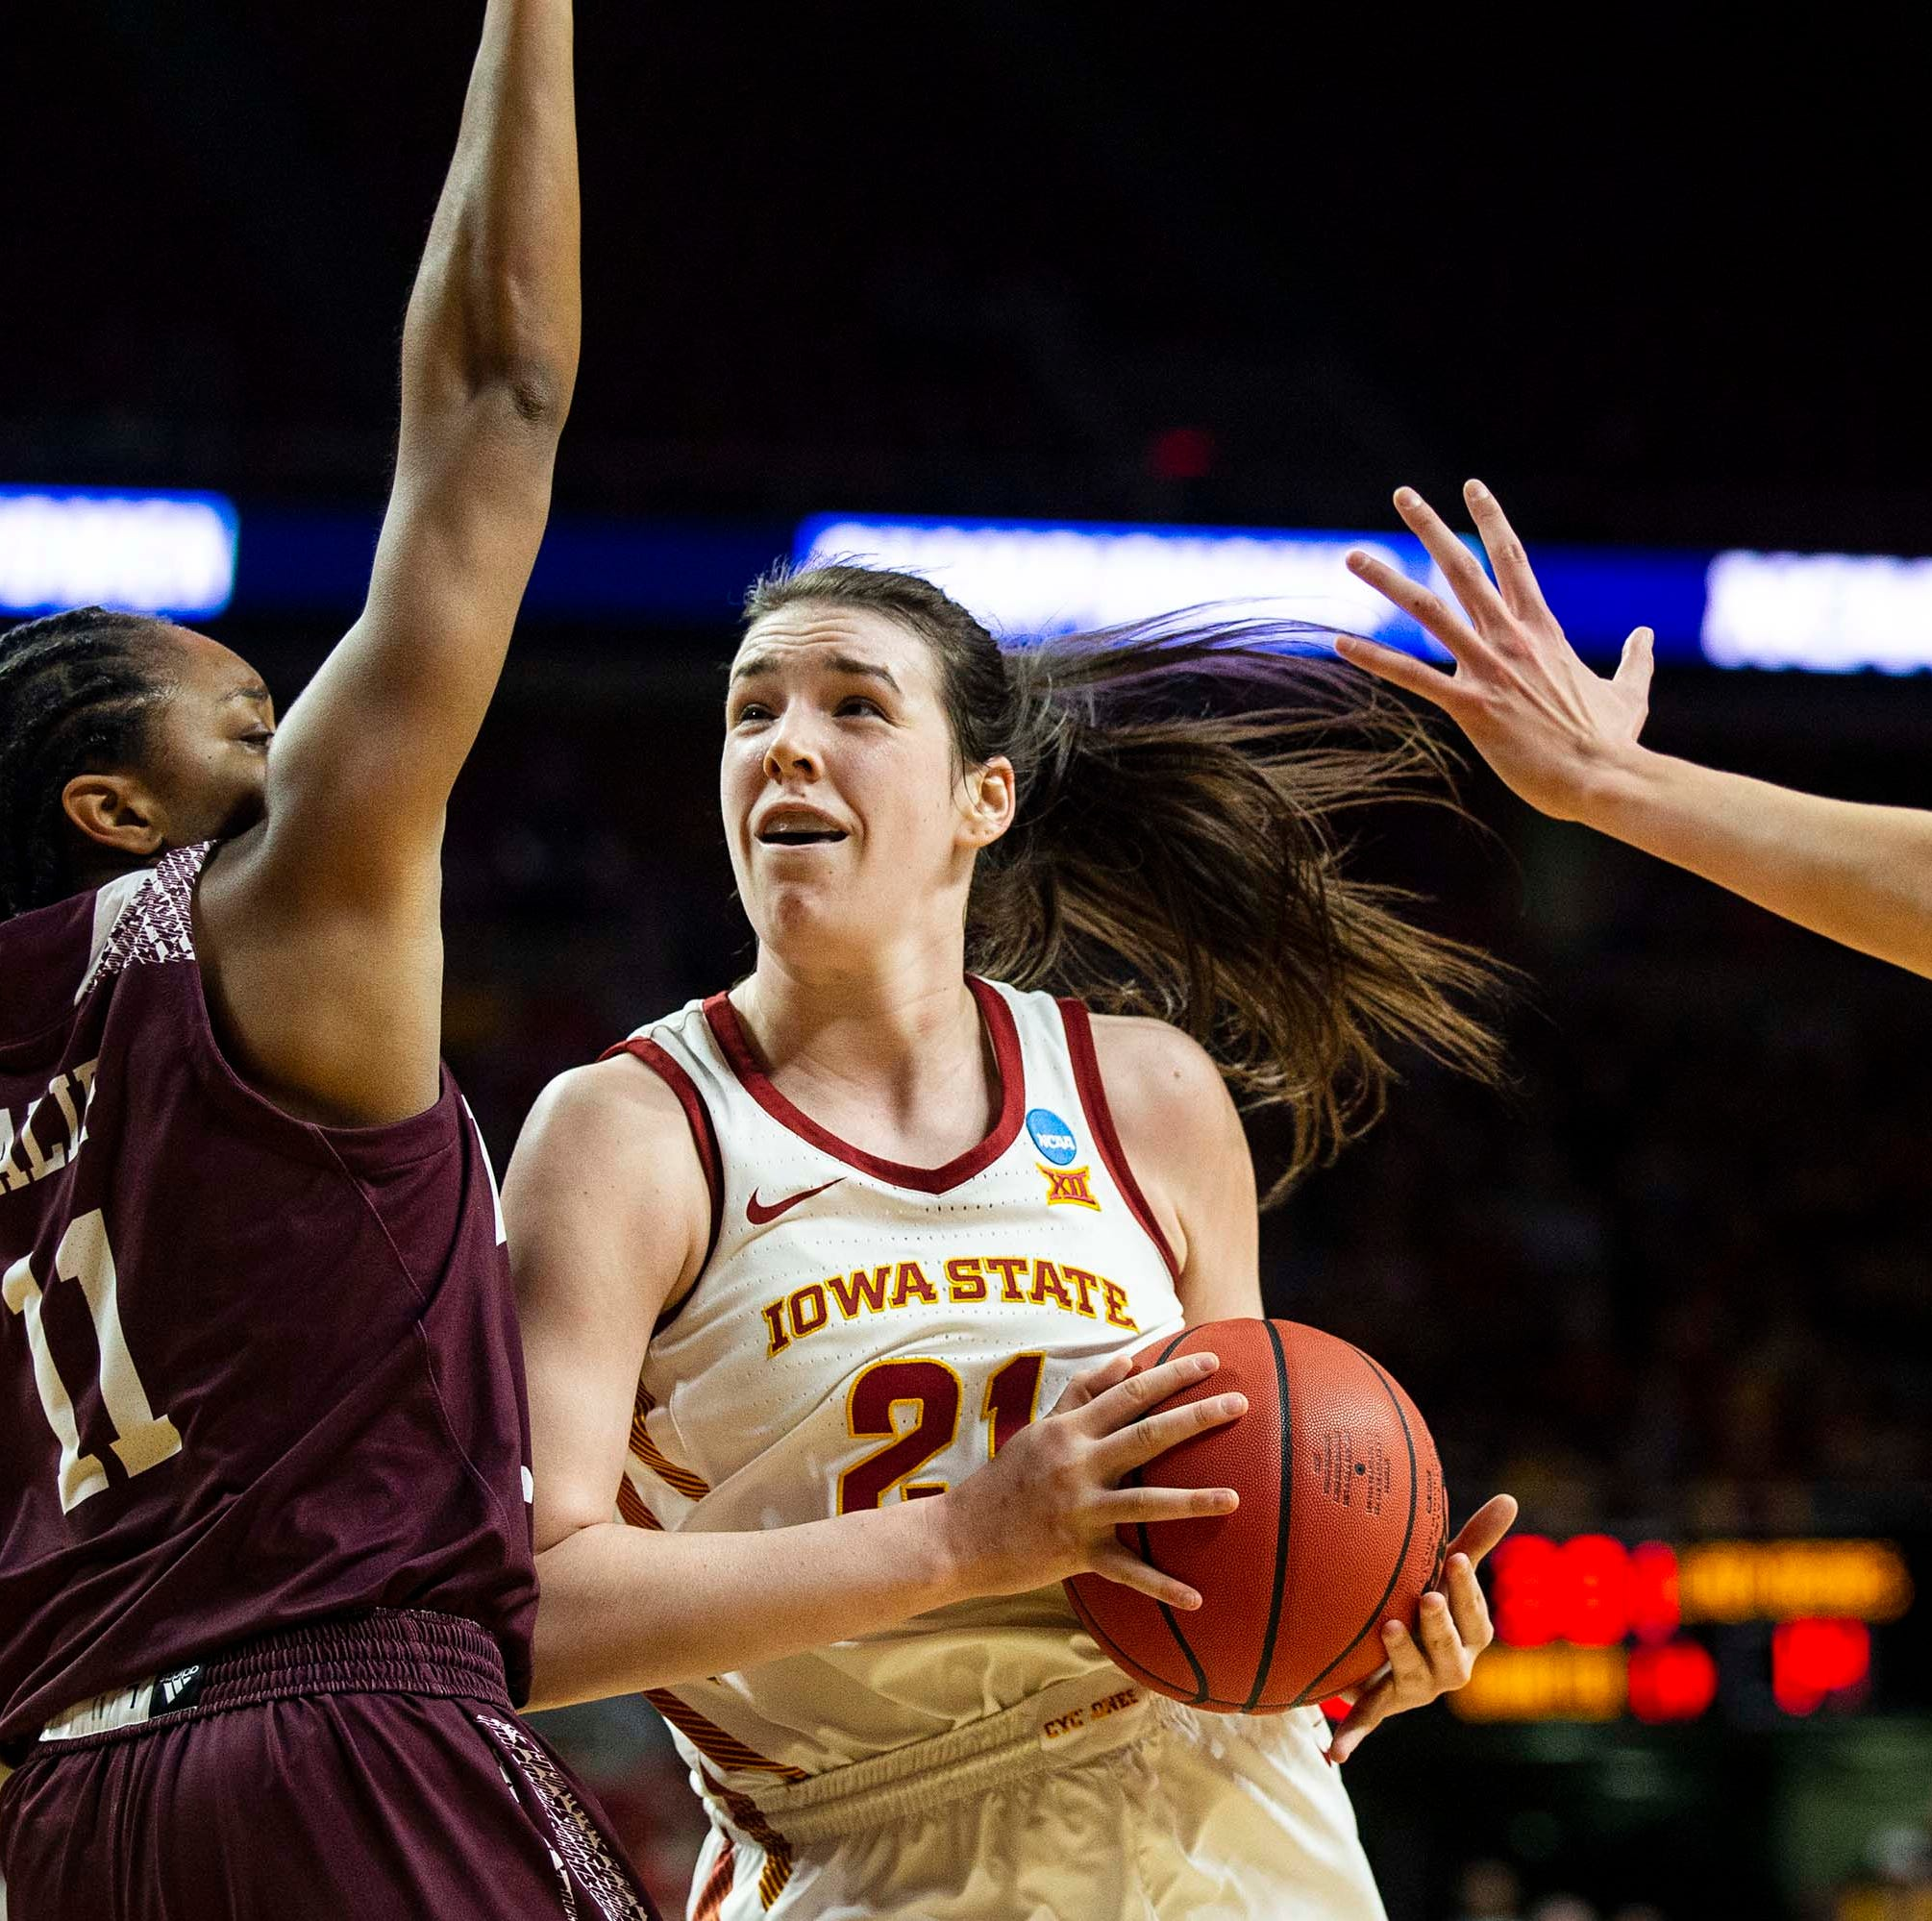 'Playing in Hilton is unreal': Bridget Carleton solidifies her legacy at Iowa State